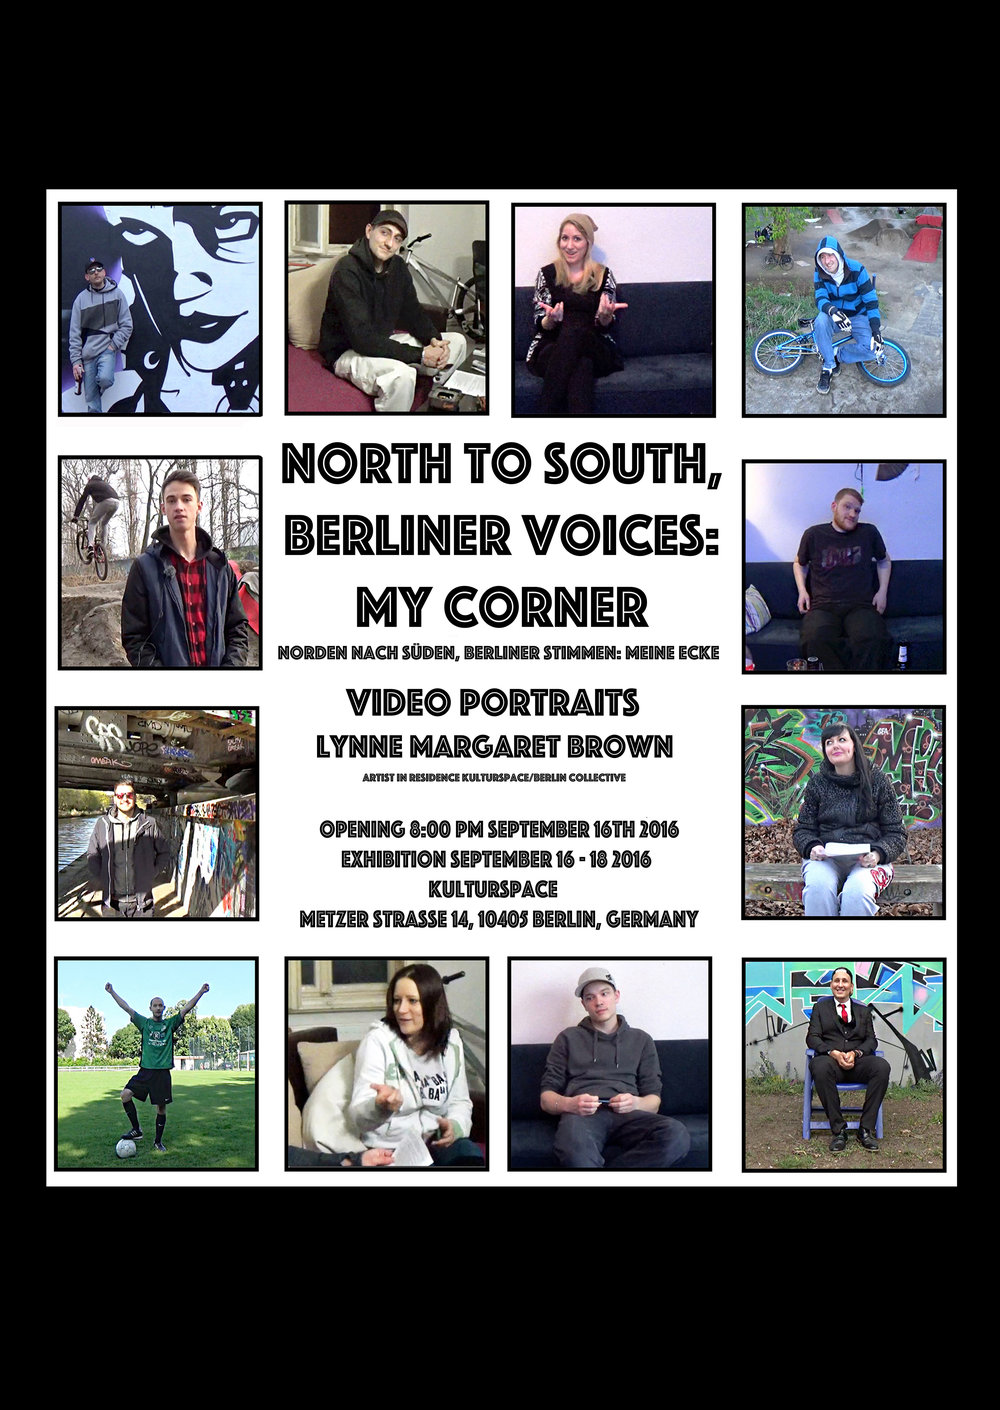 CORRECTED Poster image NORTH SOUTH BERLINER VOICES L BROWN 244.jpg